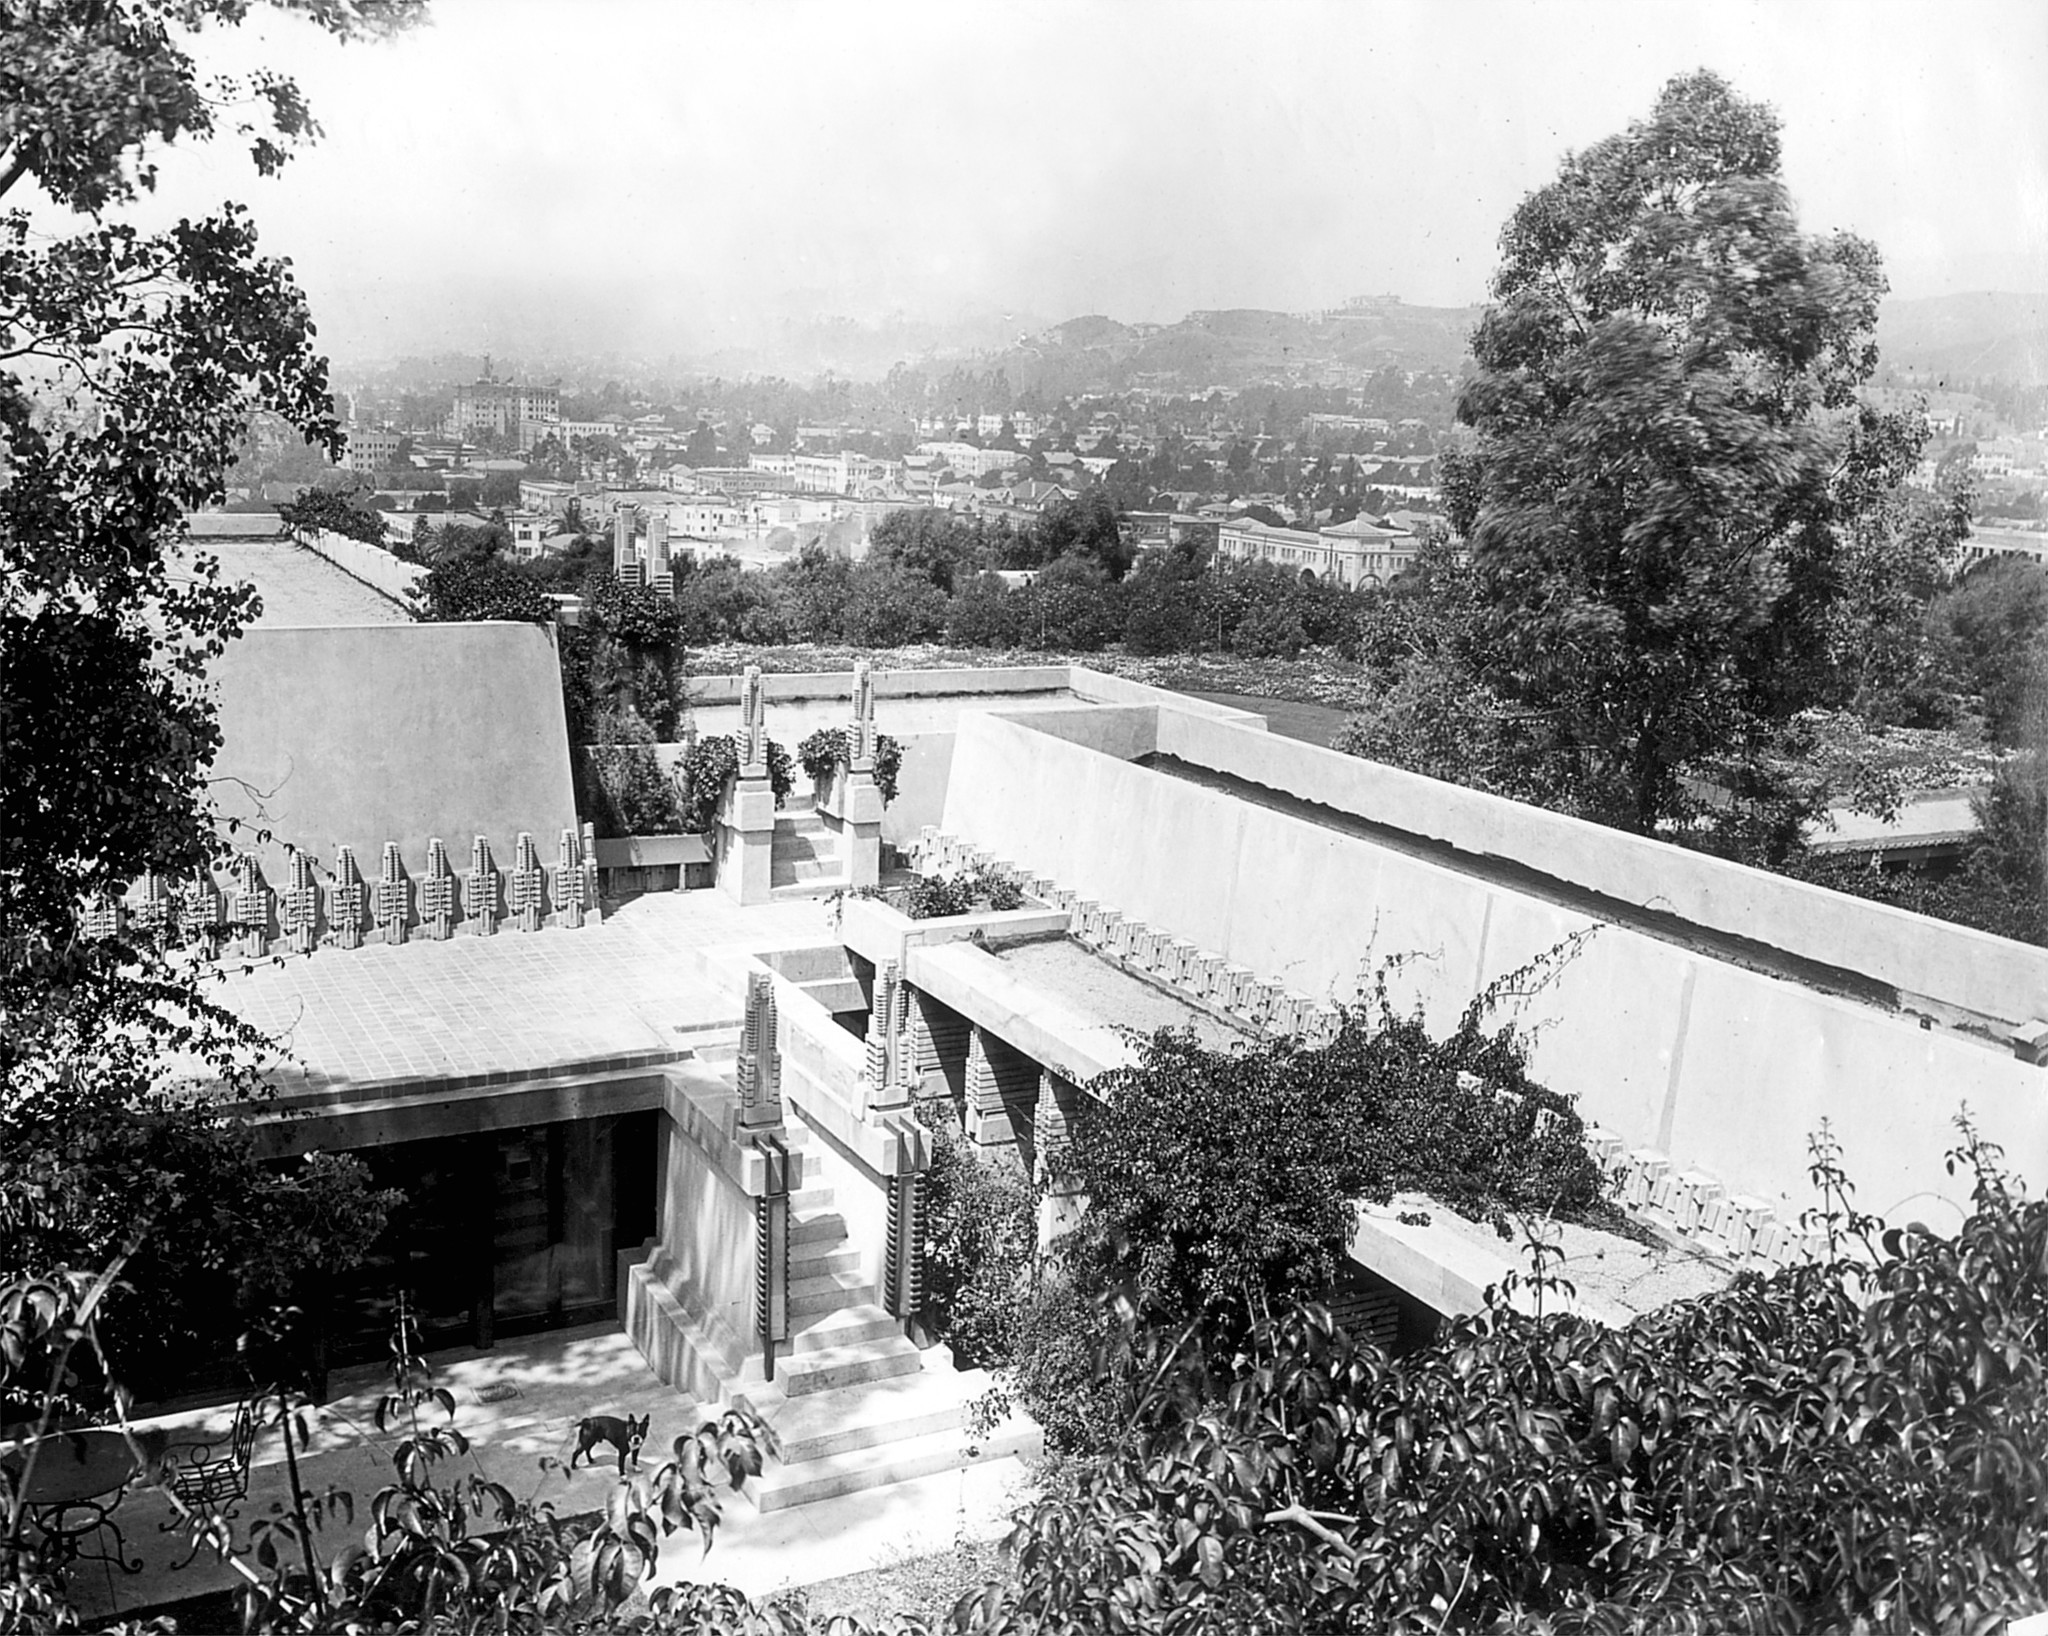 Hollyhock House, pictured from an upper terrace of the Barnsdall property in 1927.